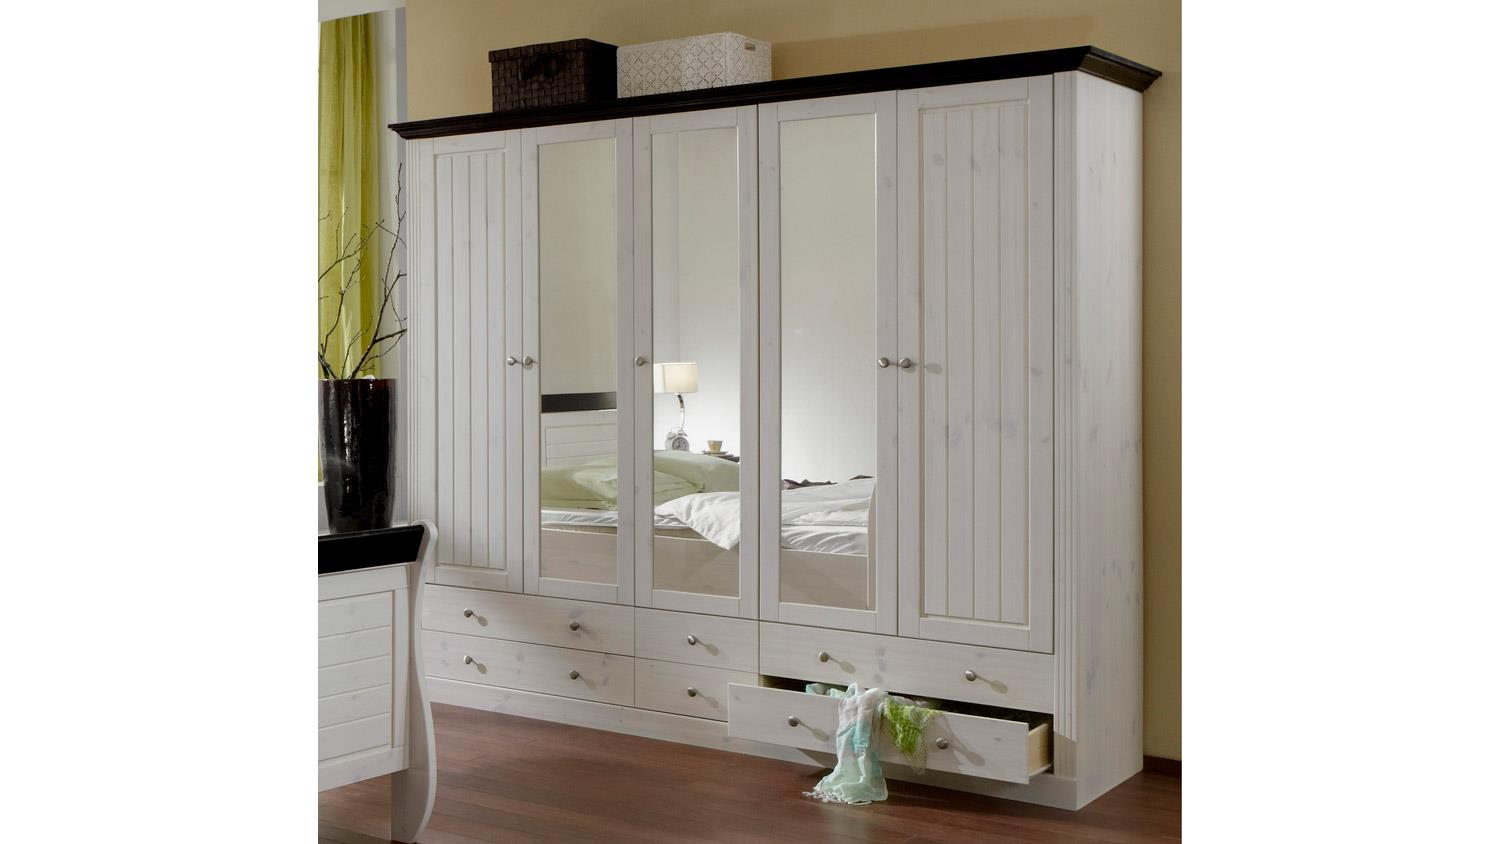 kleiderschrank monaco kiefer massiv white wash kolonial b. Black Bedroom Furniture Sets. Home Design Ideas